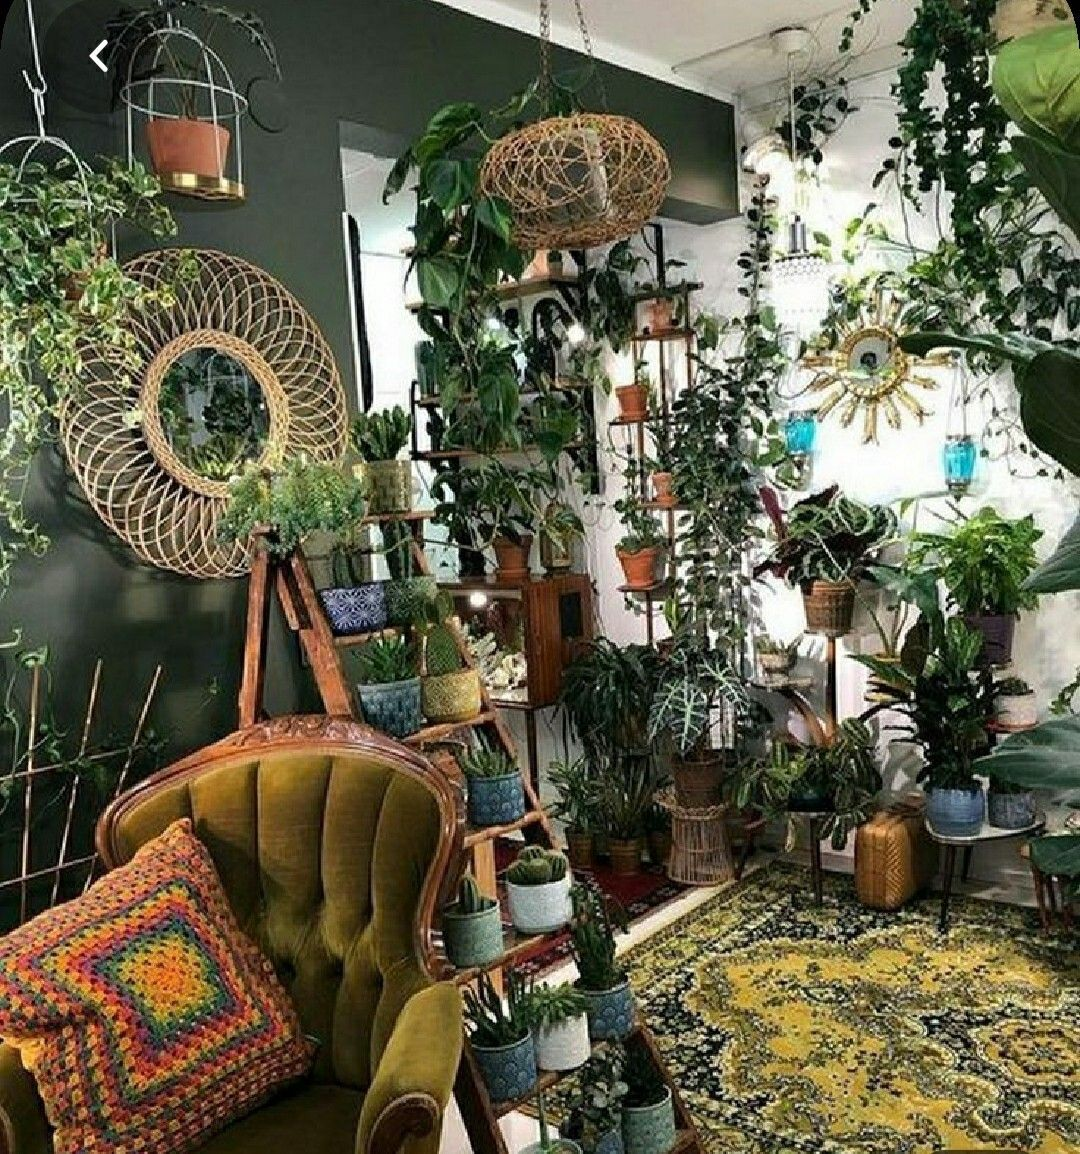 10 Creative Home Decor Ideas On A Budget In 2020 Creative Home Decor Hippie Home Decor Natural Home Decor